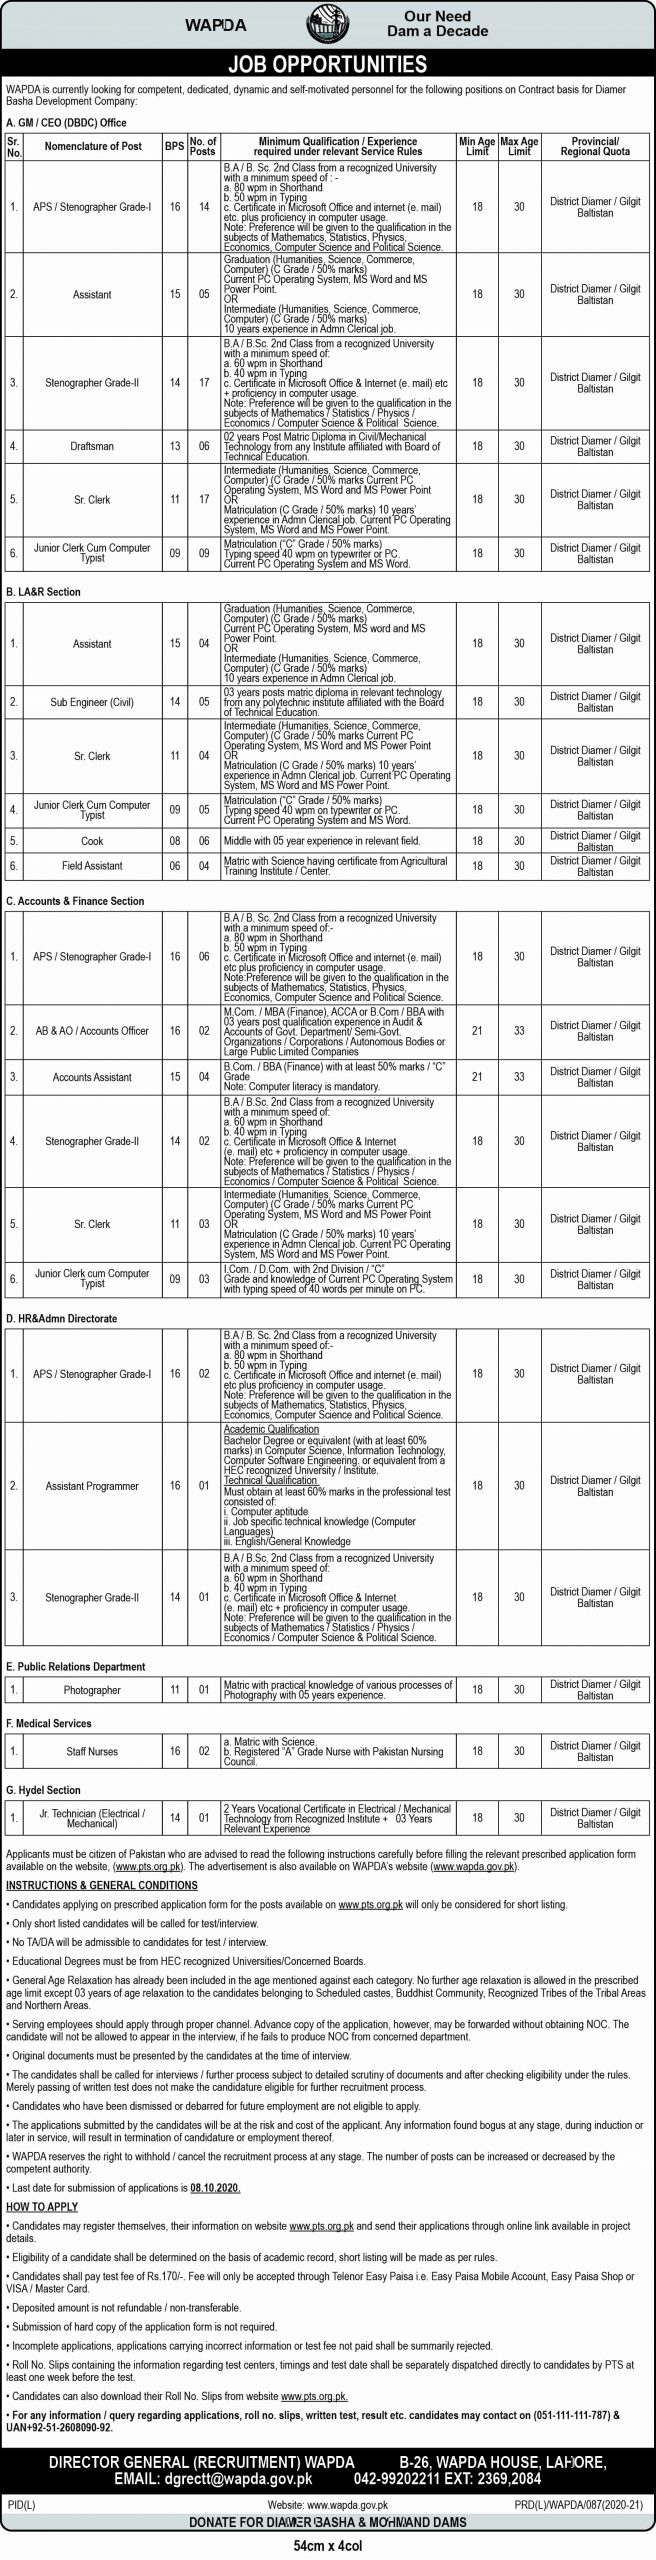 WAPDA Jobs On Contract Basis Last Date 08 October 2020 : Vacant Seats In DASU HYDRO POWER PROJECT, District Diamer, Gilgit Baltistan